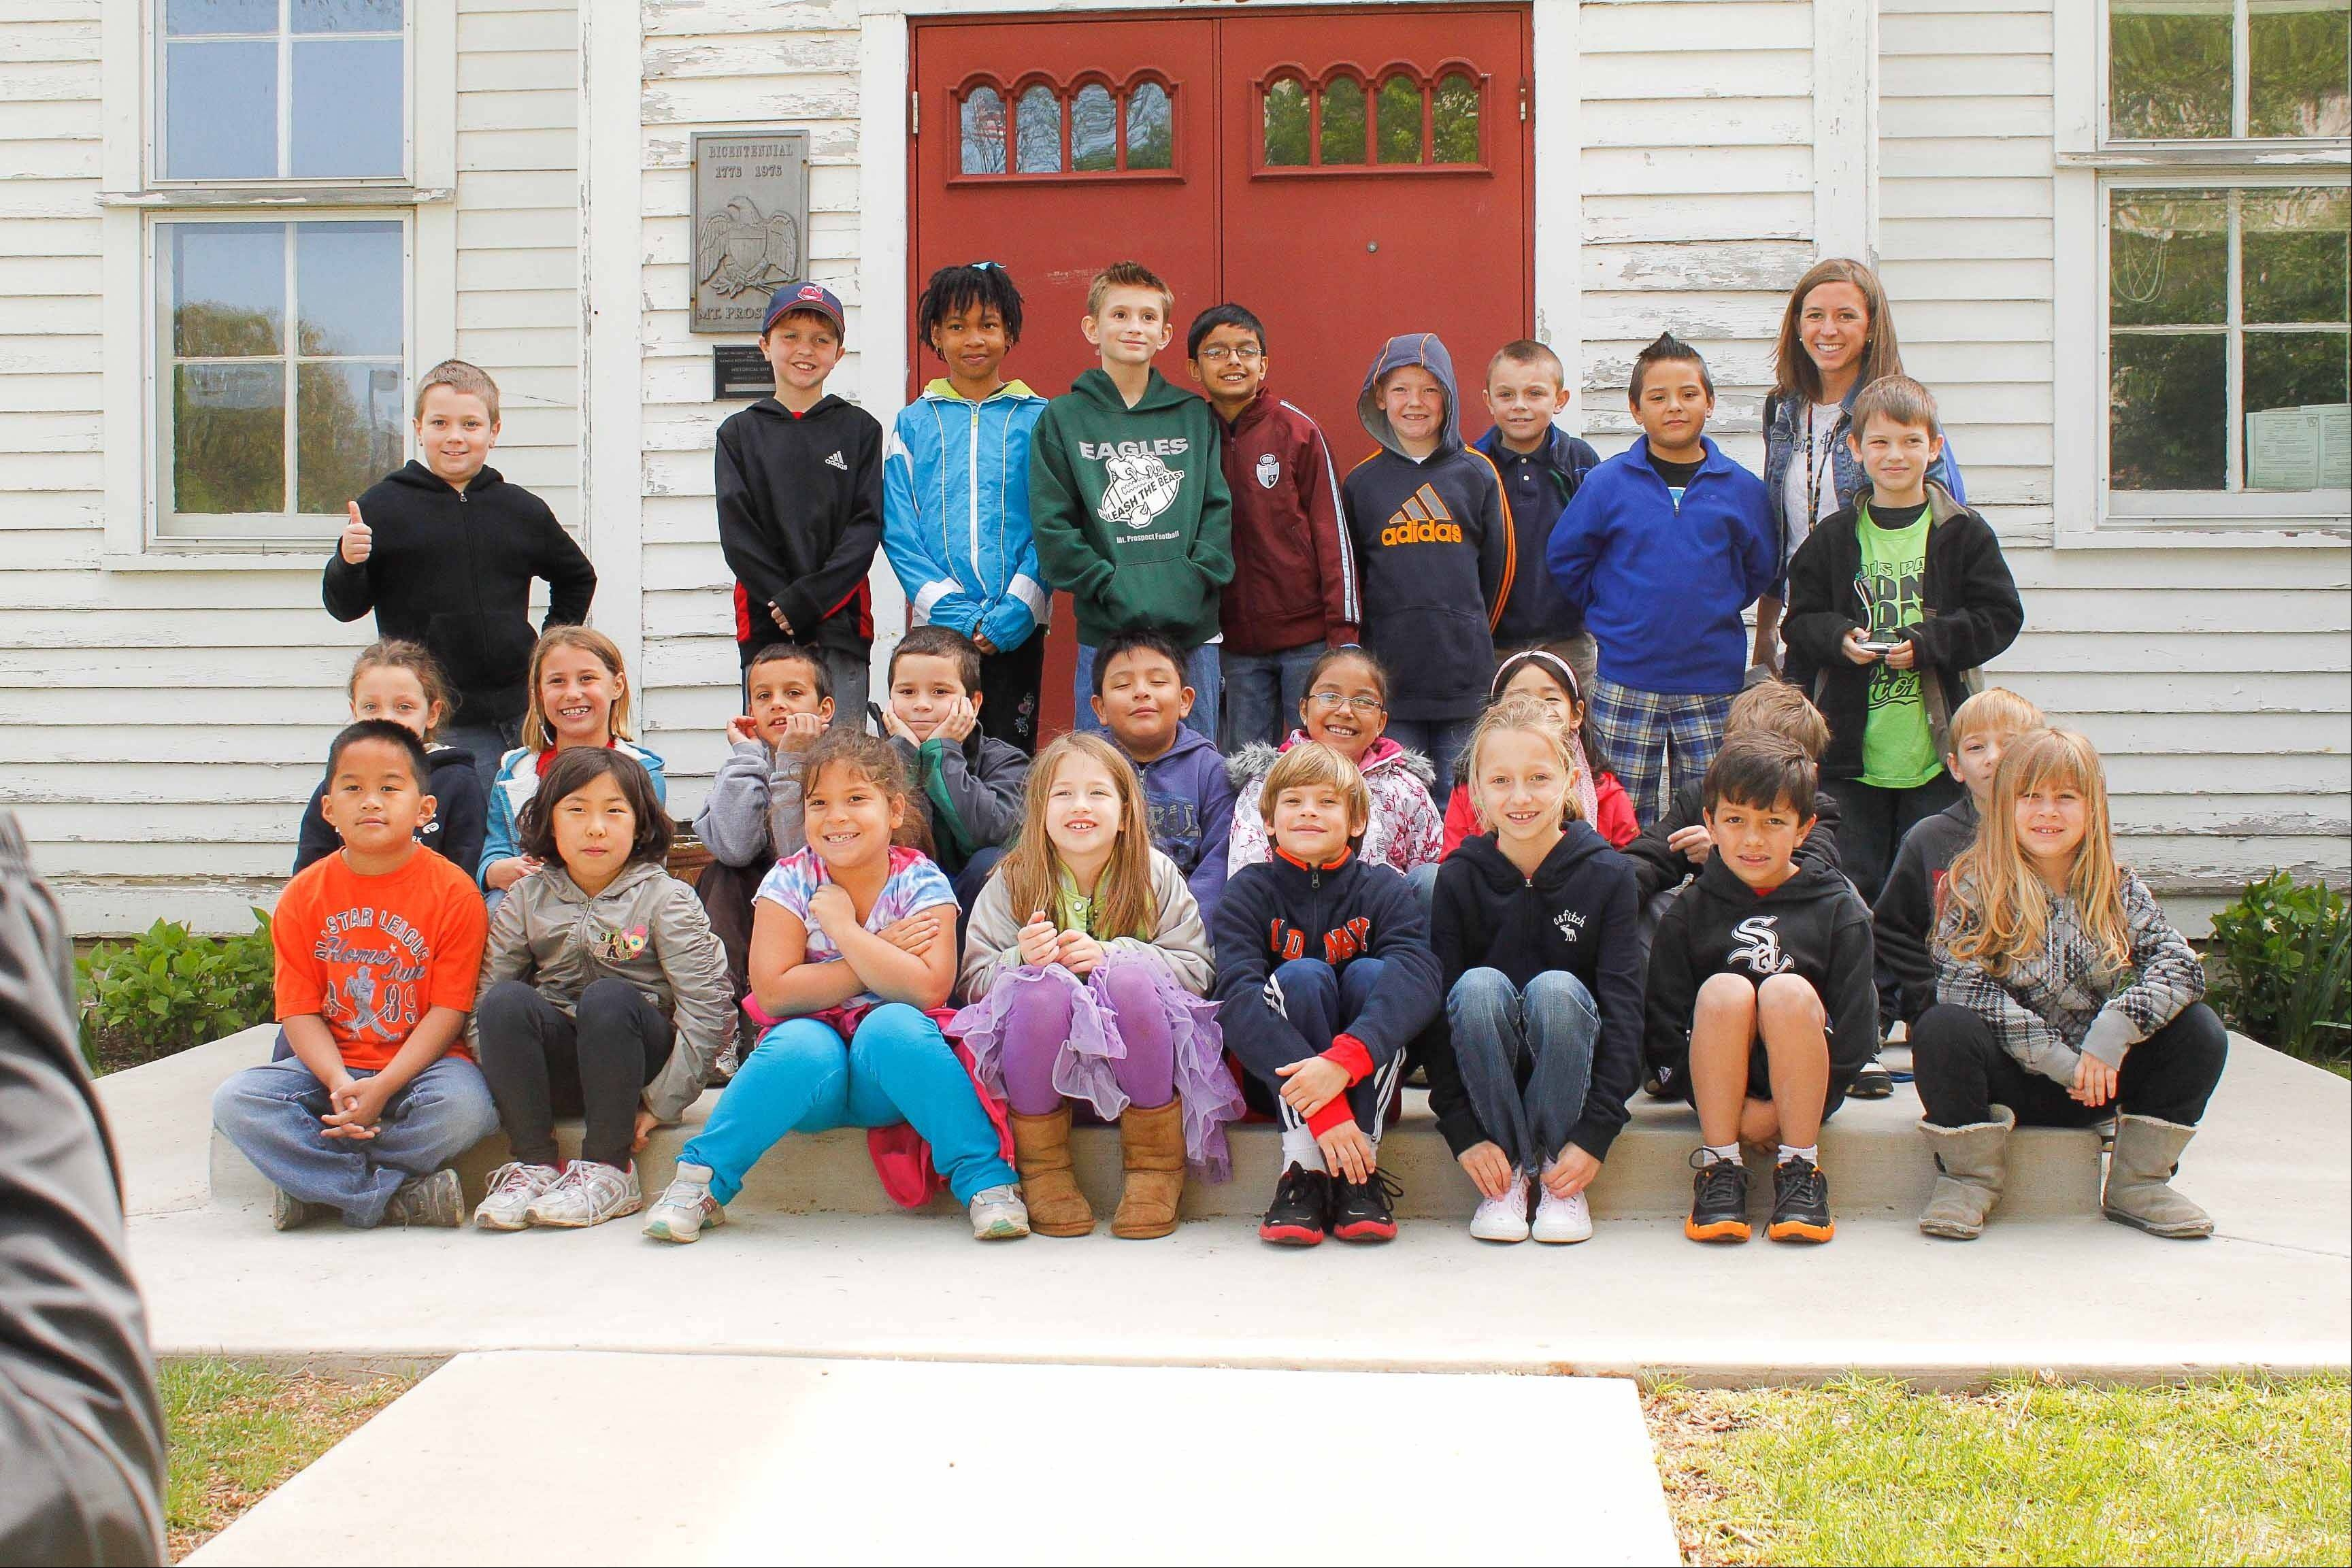 Second-graders from Lions Park School visit Central School on a recent field trip.